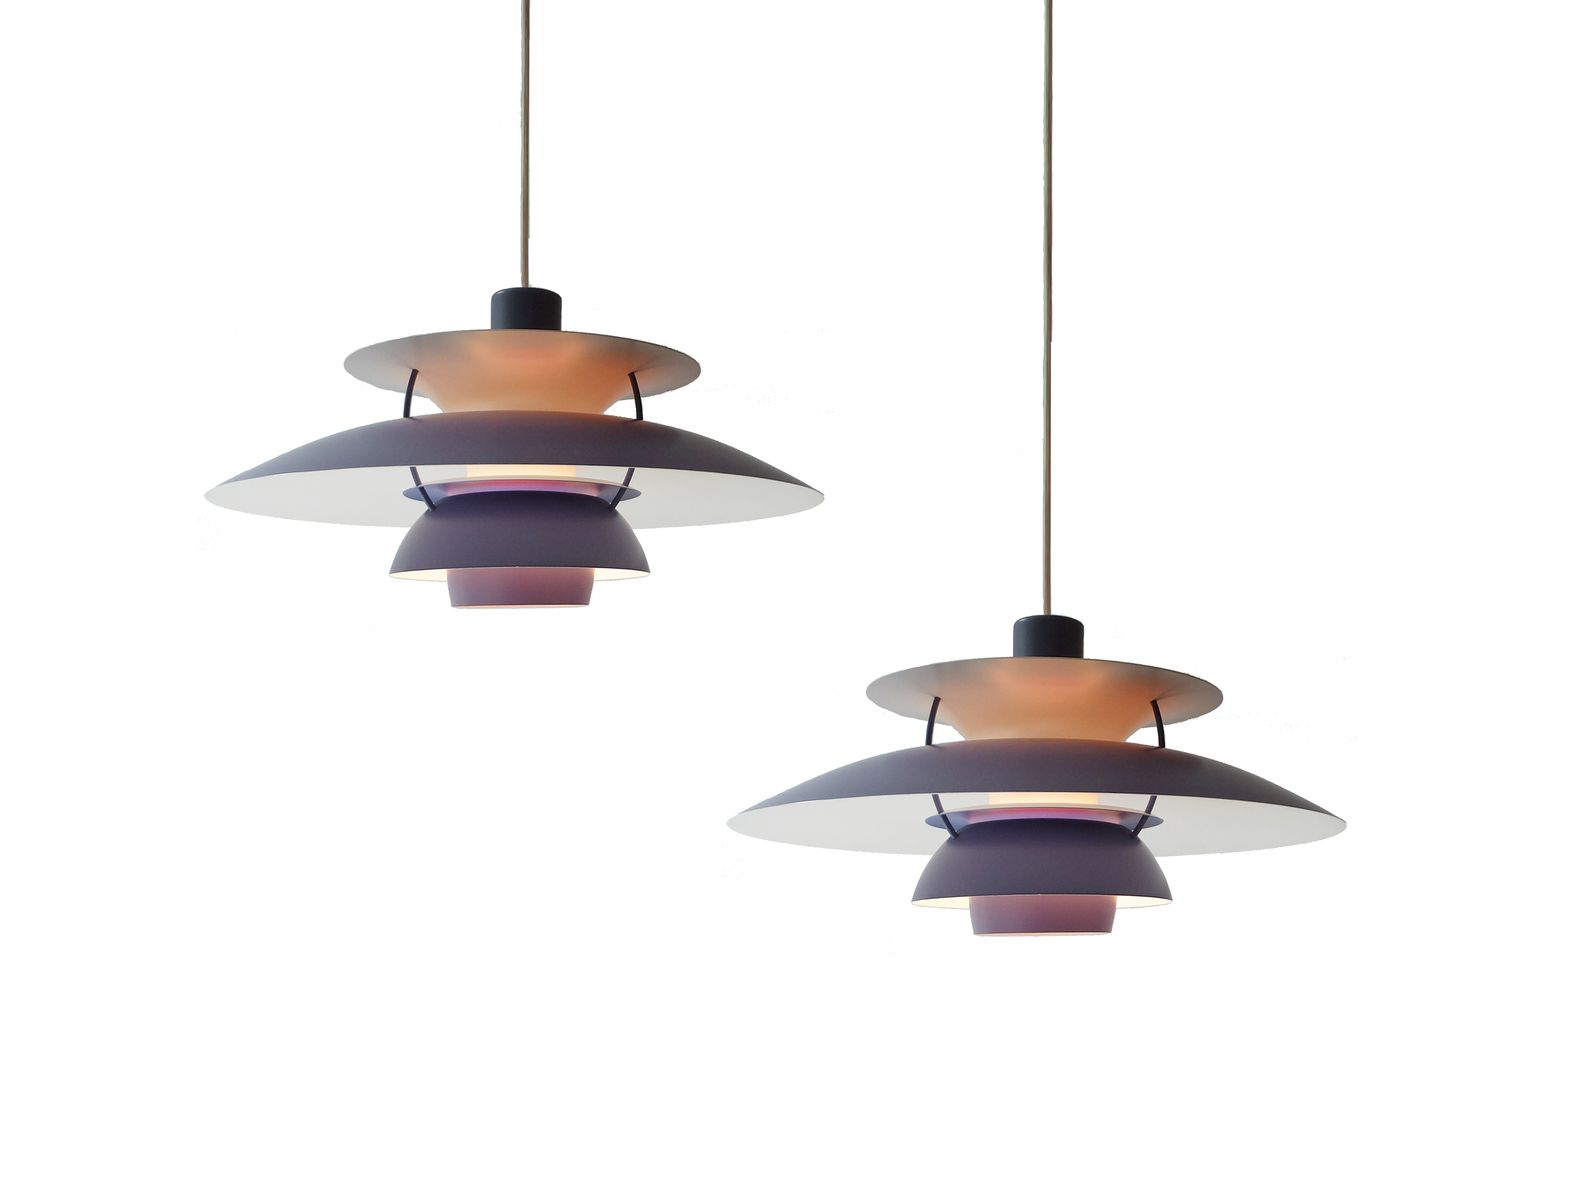 vintage ph5 violet pendants by poul henningsen for louis poulsen set of 2 for sale at pamono. Black Bedroom Furniture Sets. Home Design Ideas